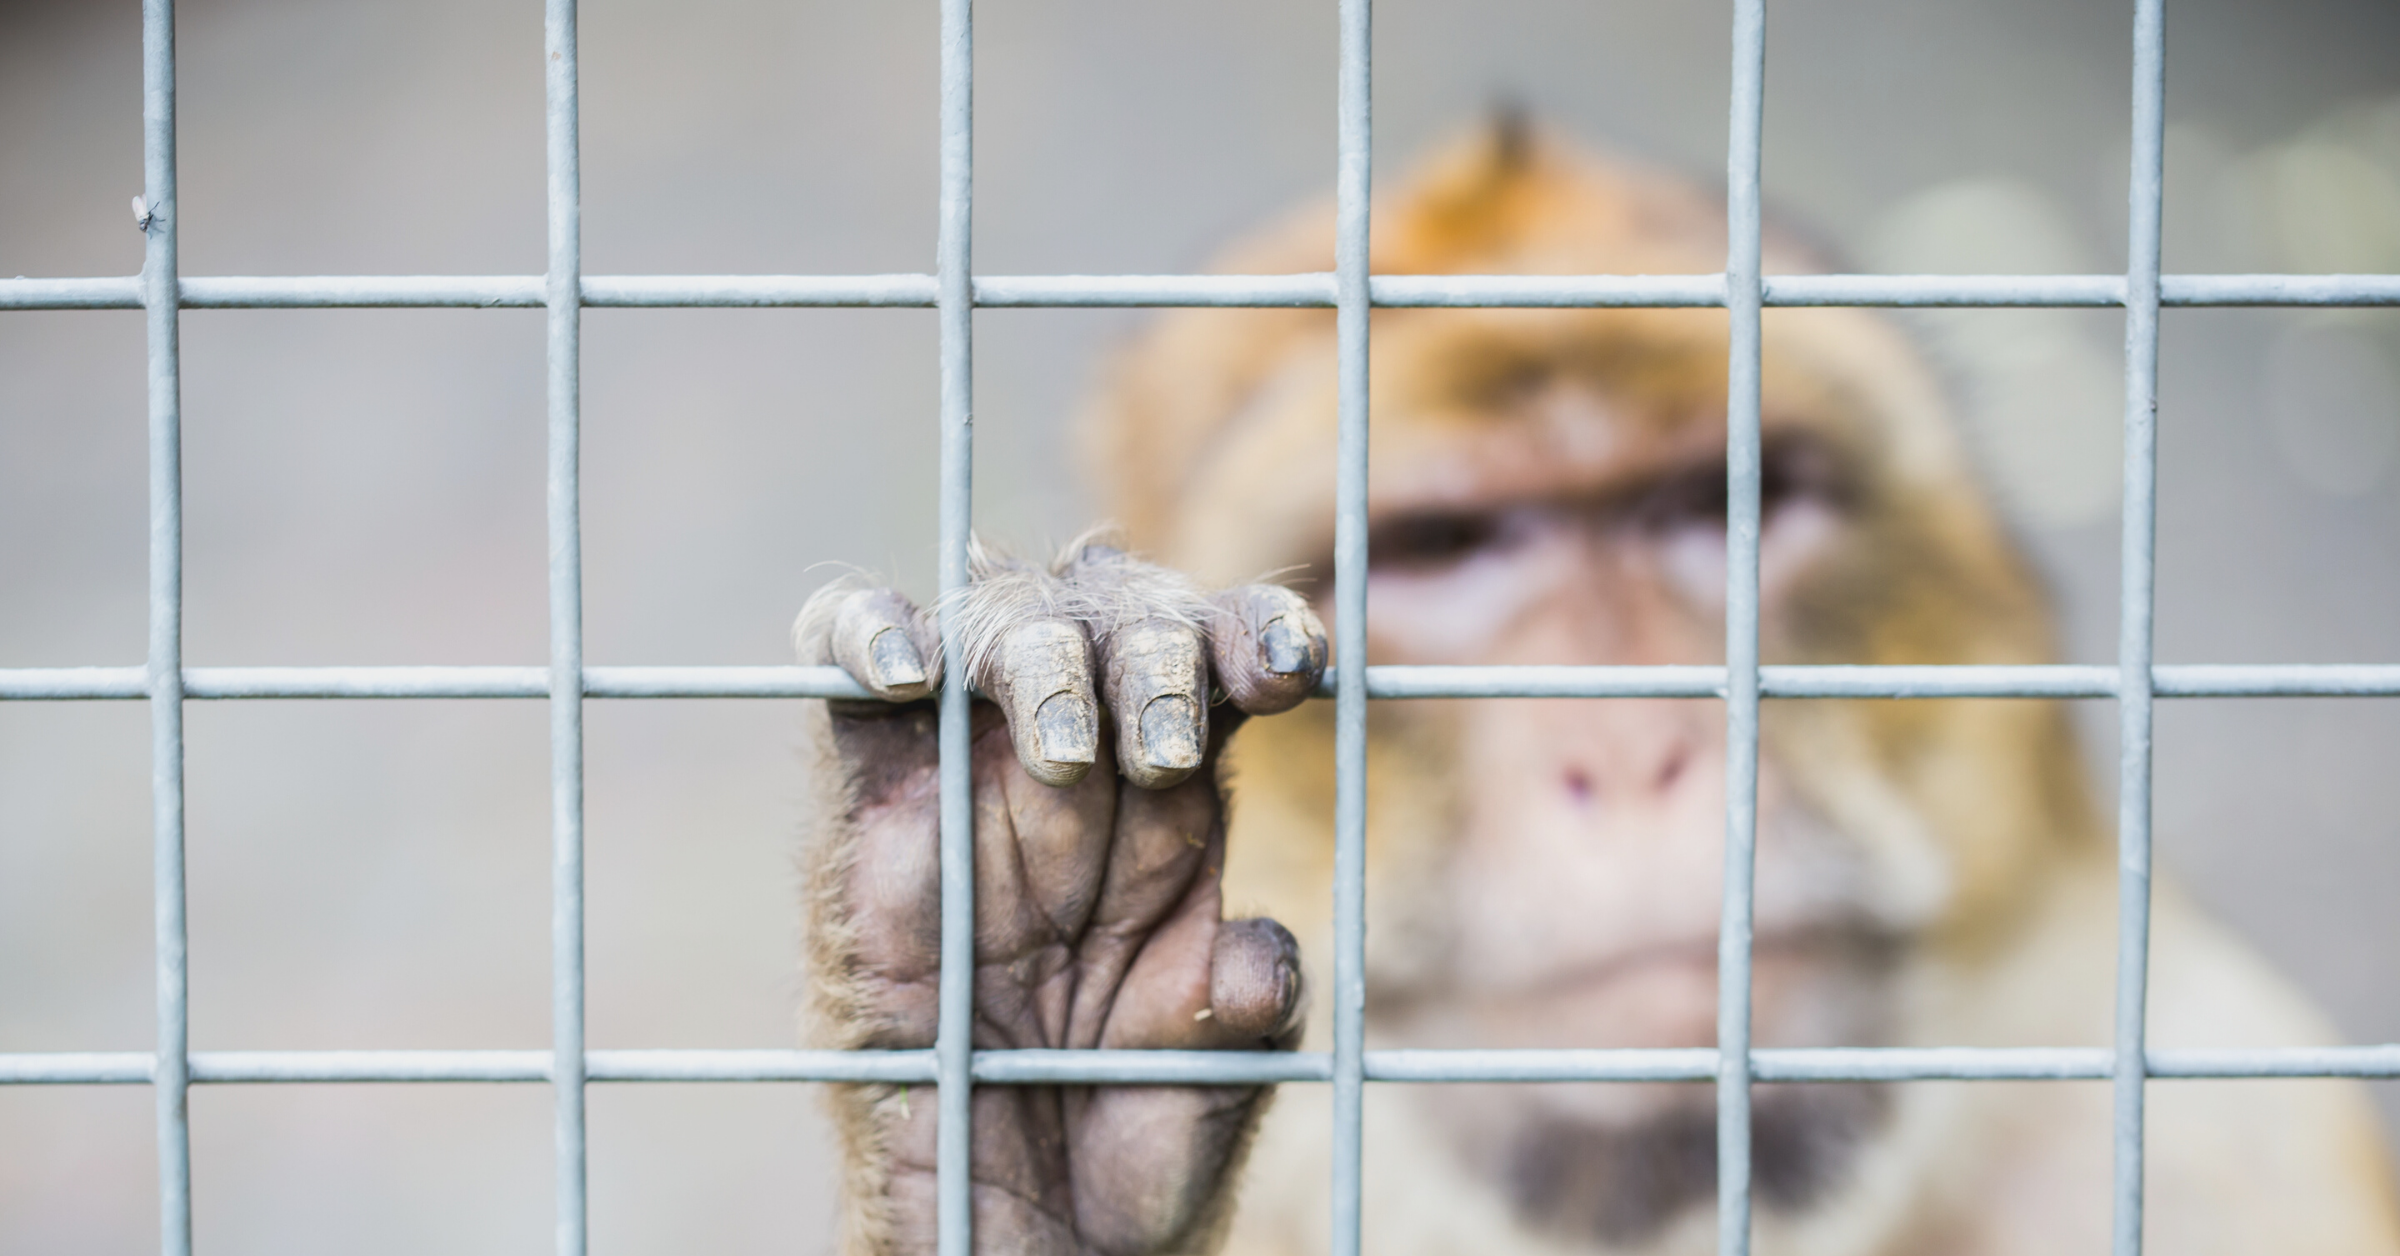 The hand of a rhesus macaque clings to metal caging, his face blurred out of focus behind